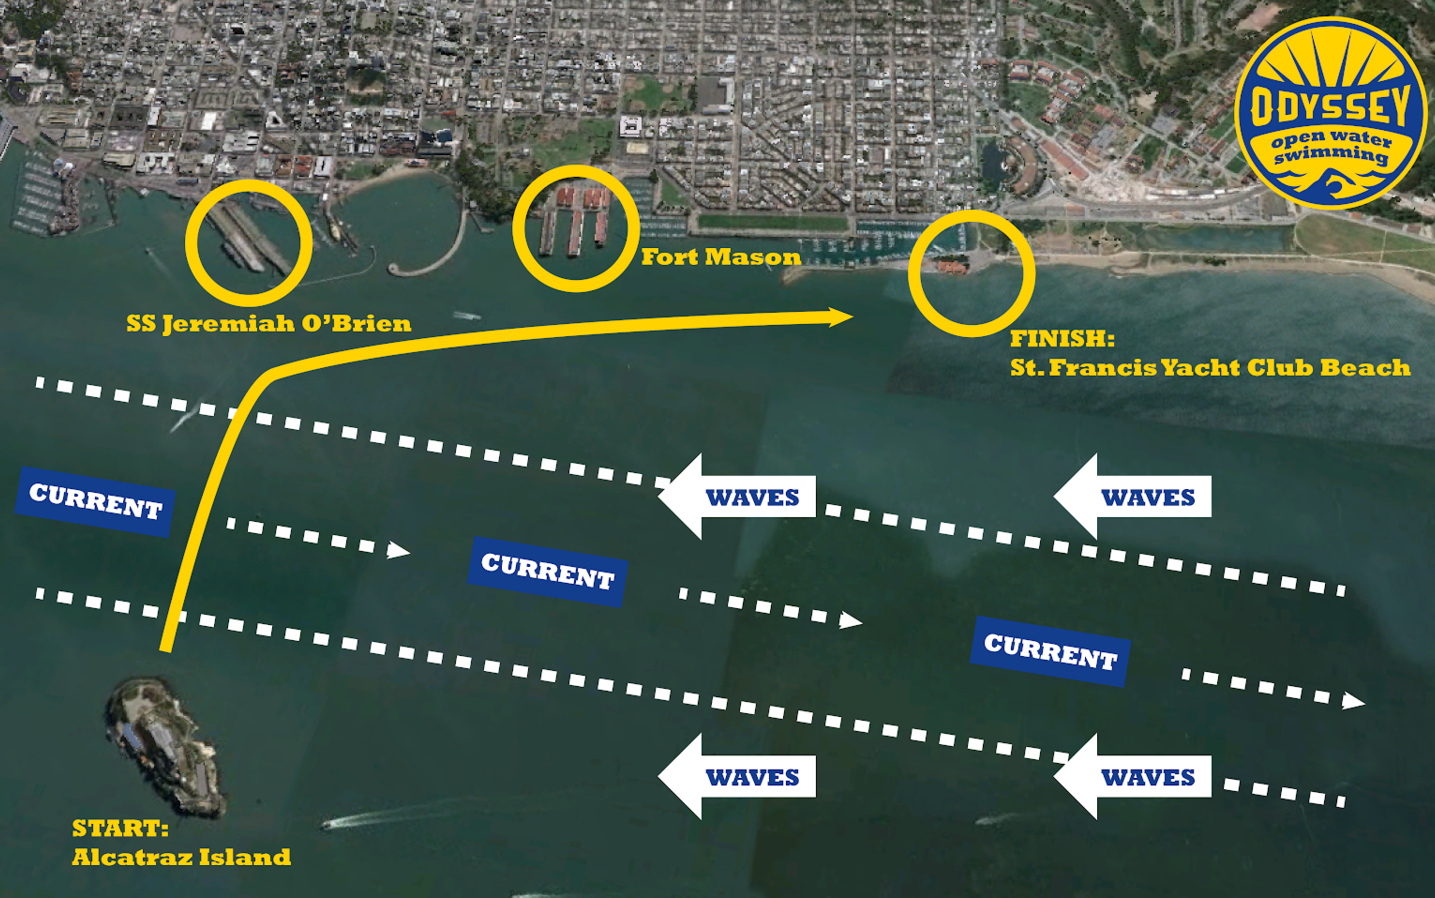 Swimming from Alcatraz Map Odyssey Open Water Swimming (2).png